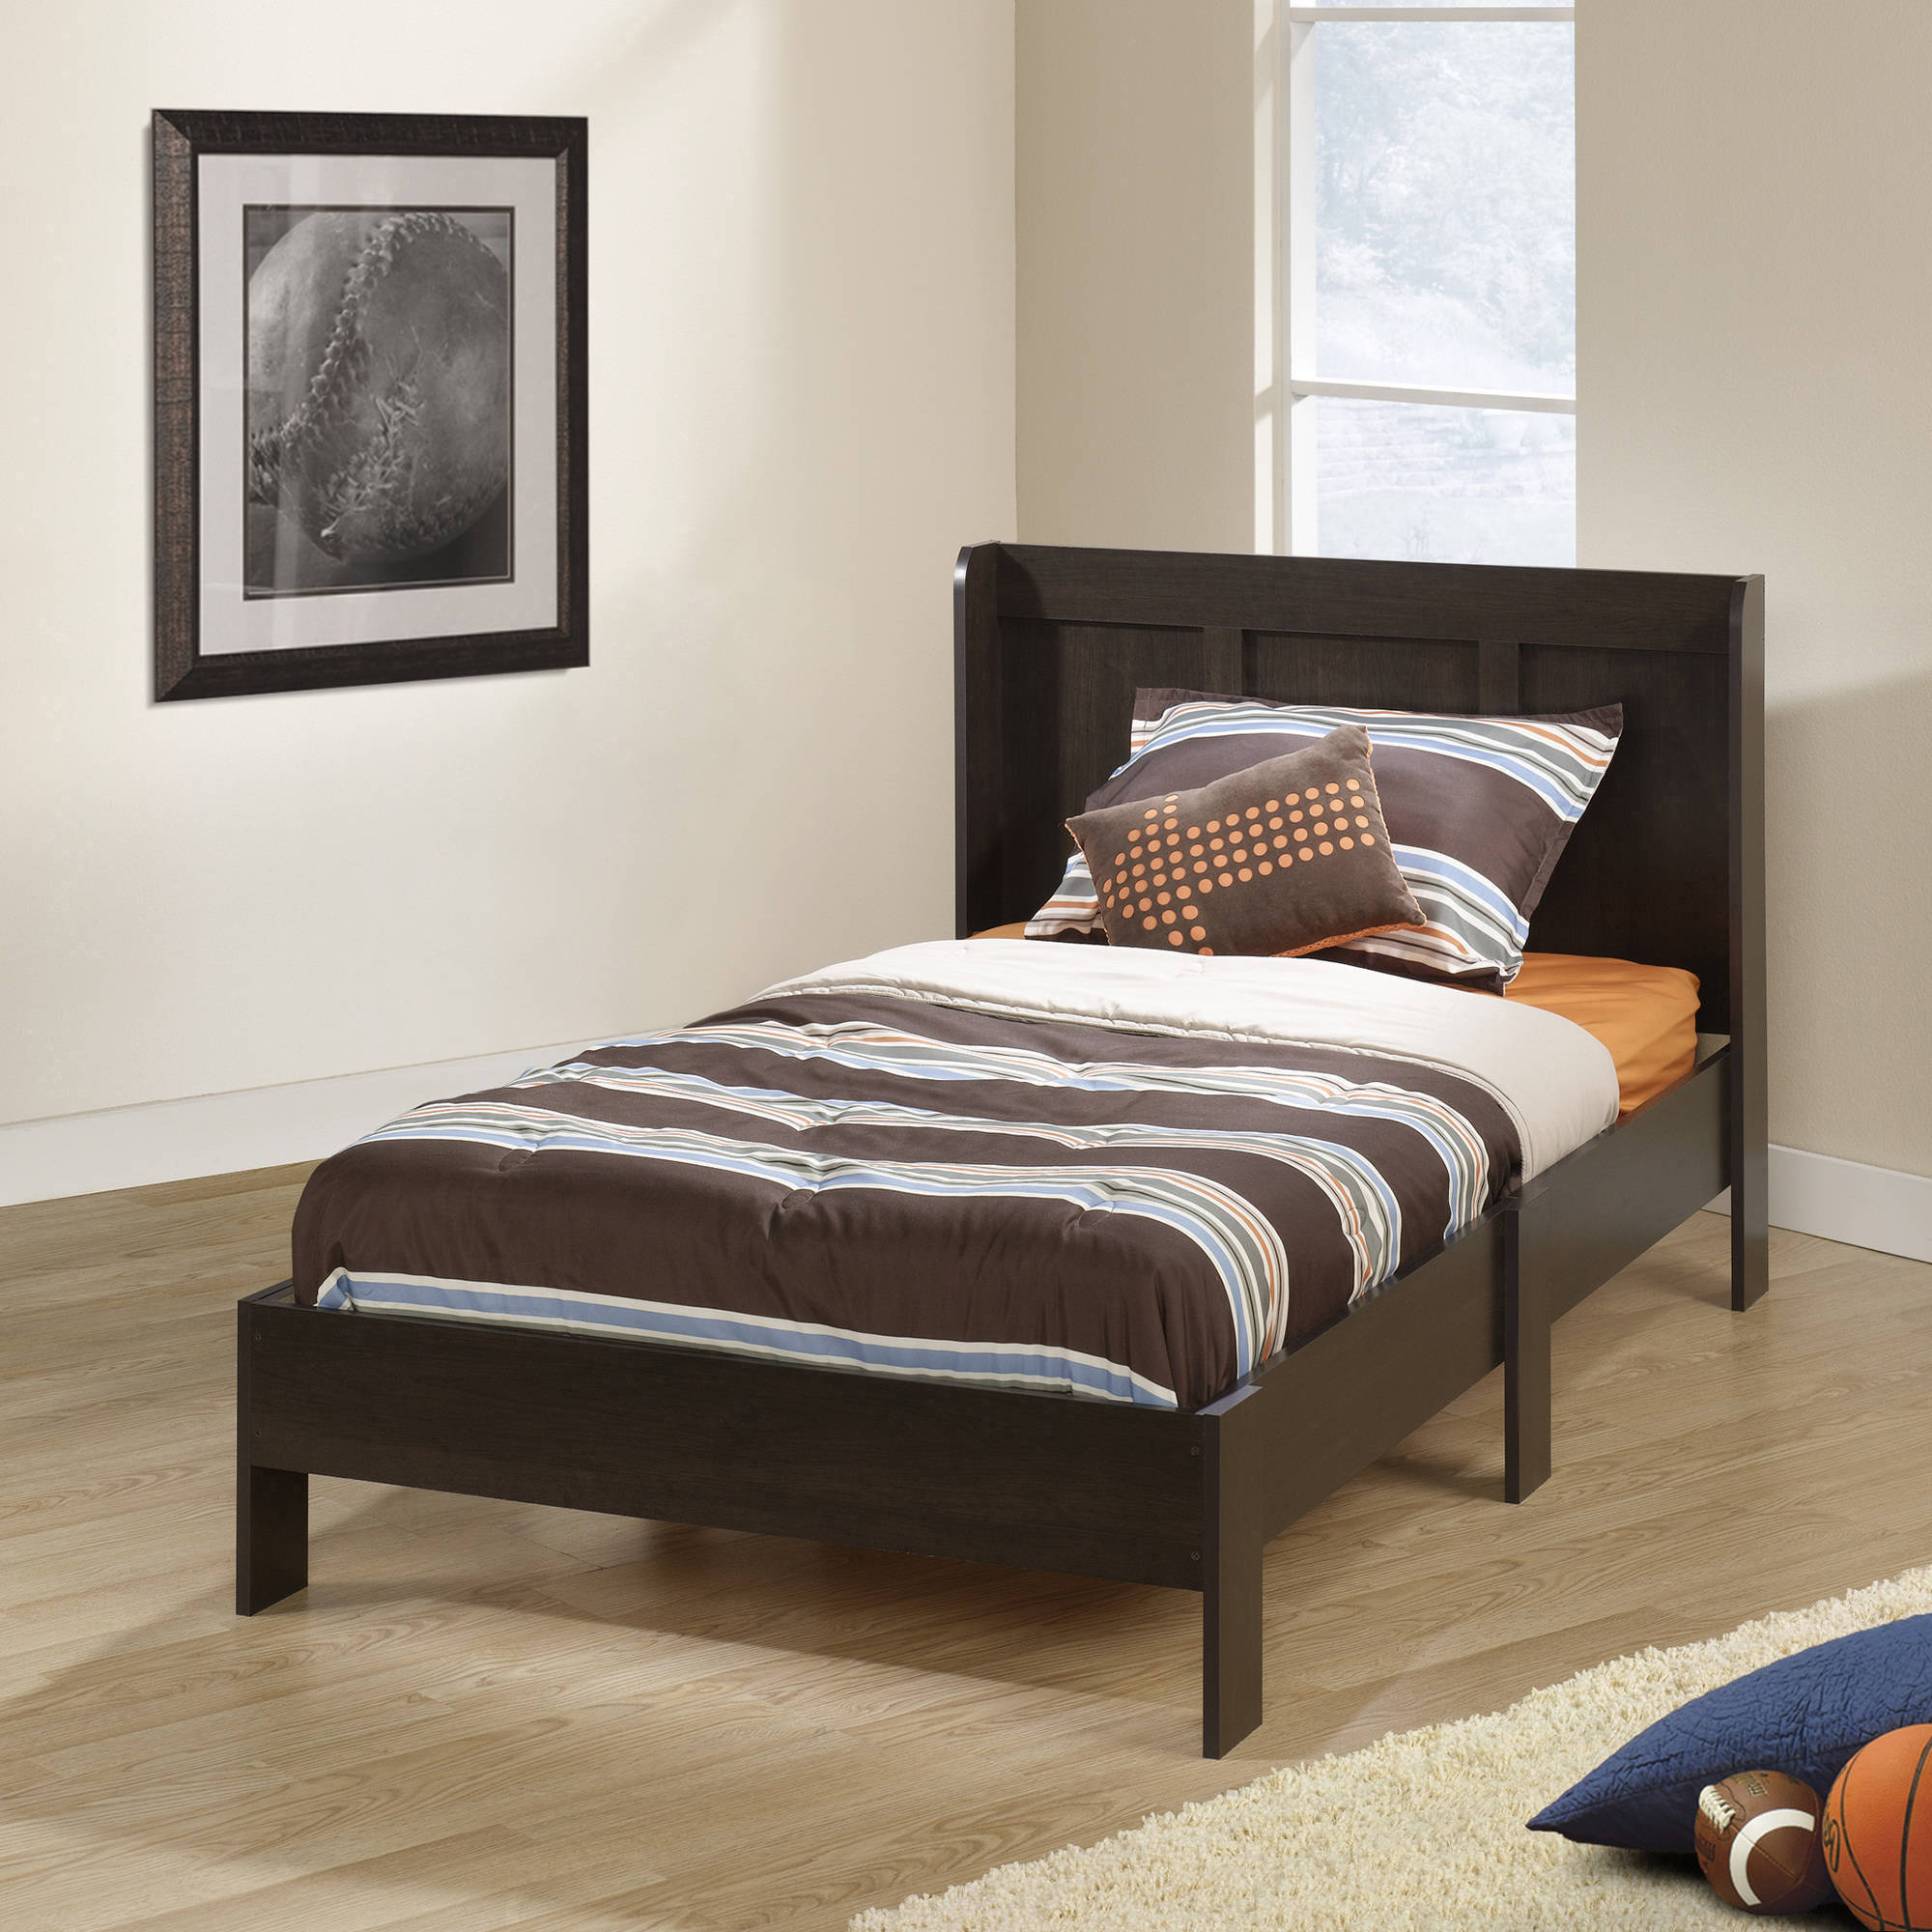 Mainstays Parklane Twin Platform Bed and Headboard, Multiple Finishes